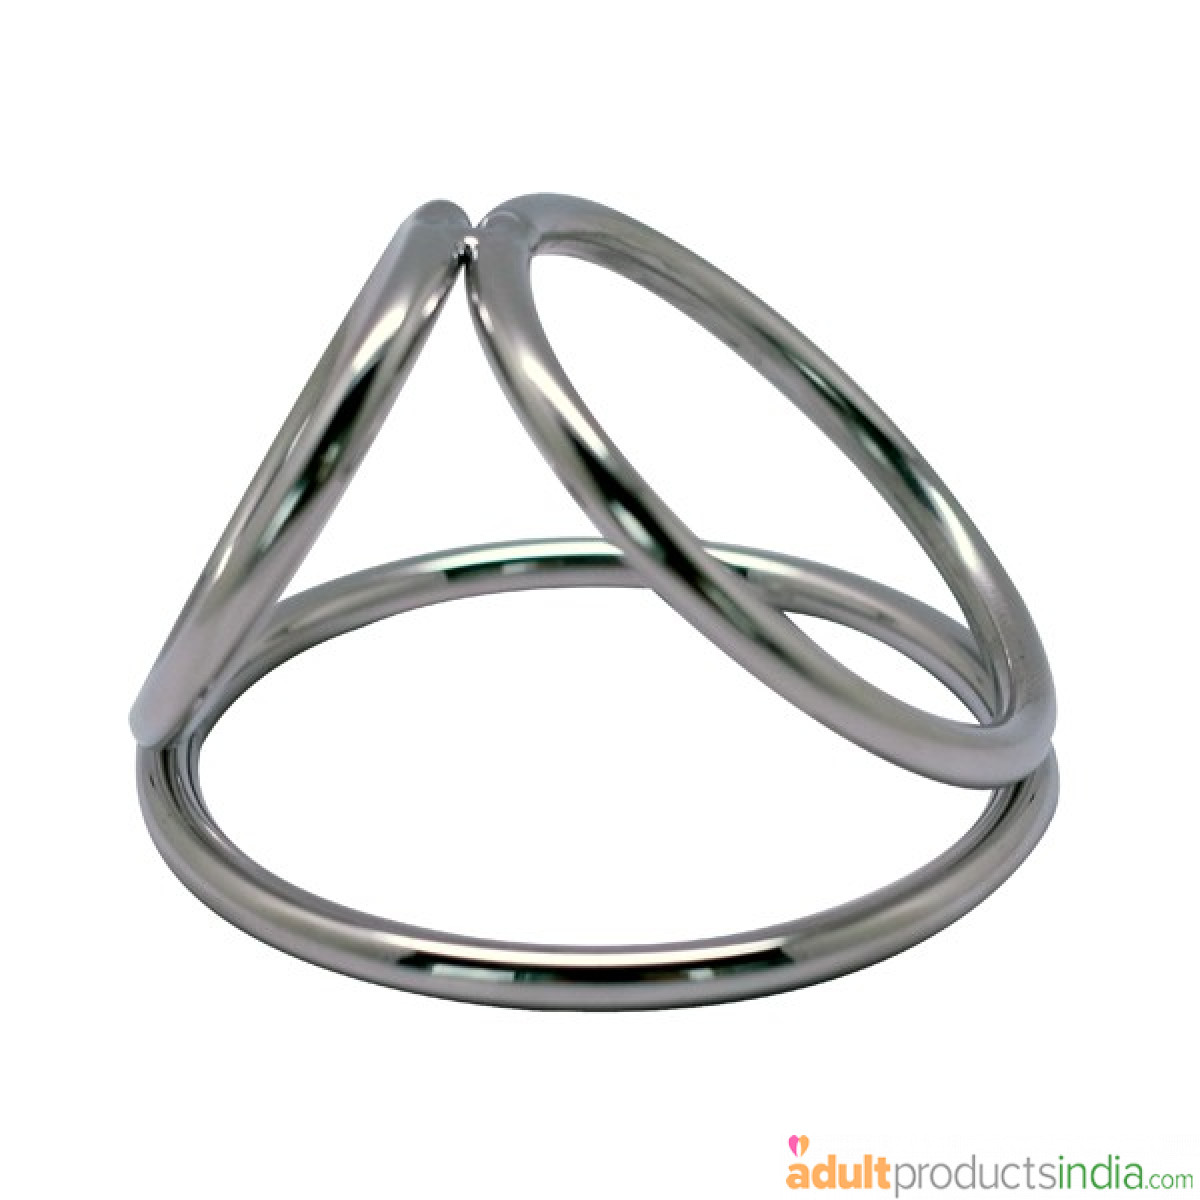 Triple Steel Cock Ring - Large Size